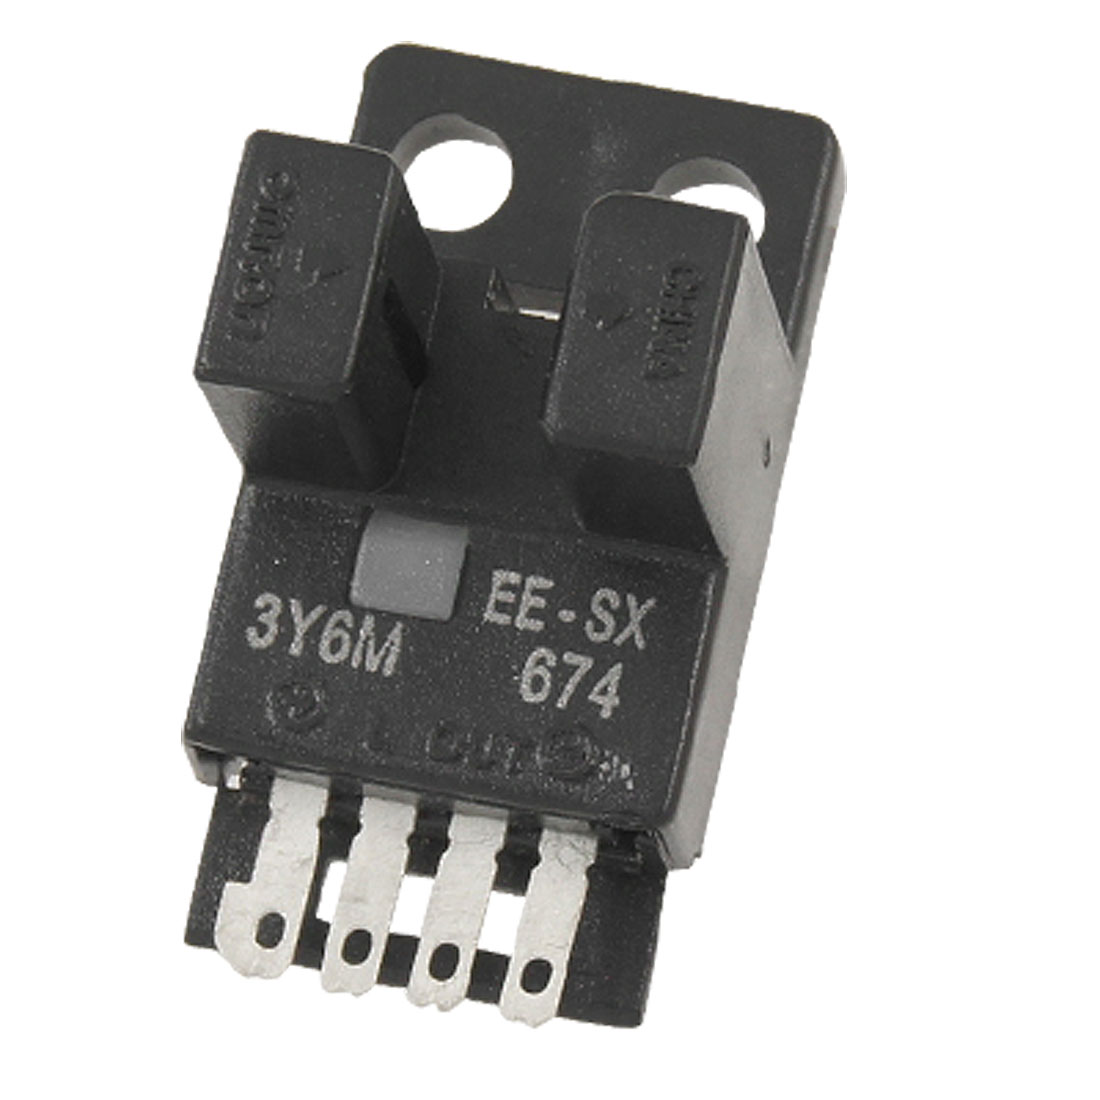 EE-SX674 NPN Micro Photo Sensor Photoelectric Switch